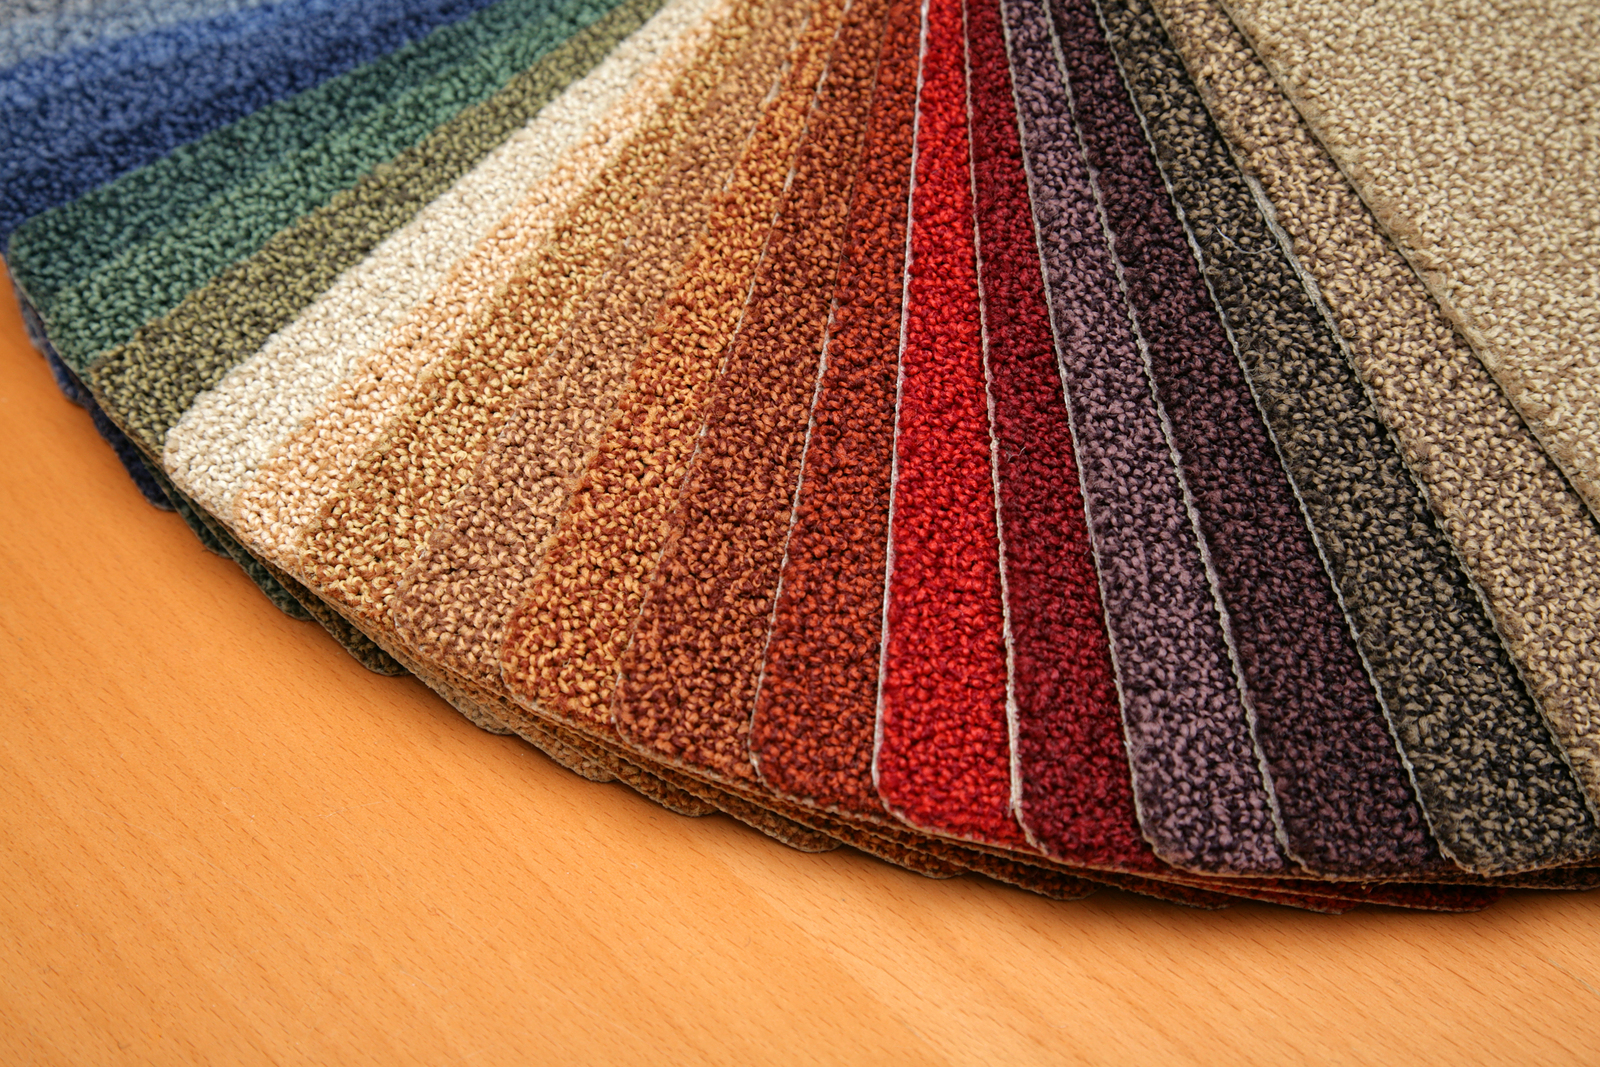 Dr house cleaning different types of carpets part 4 for Types of carpets for home